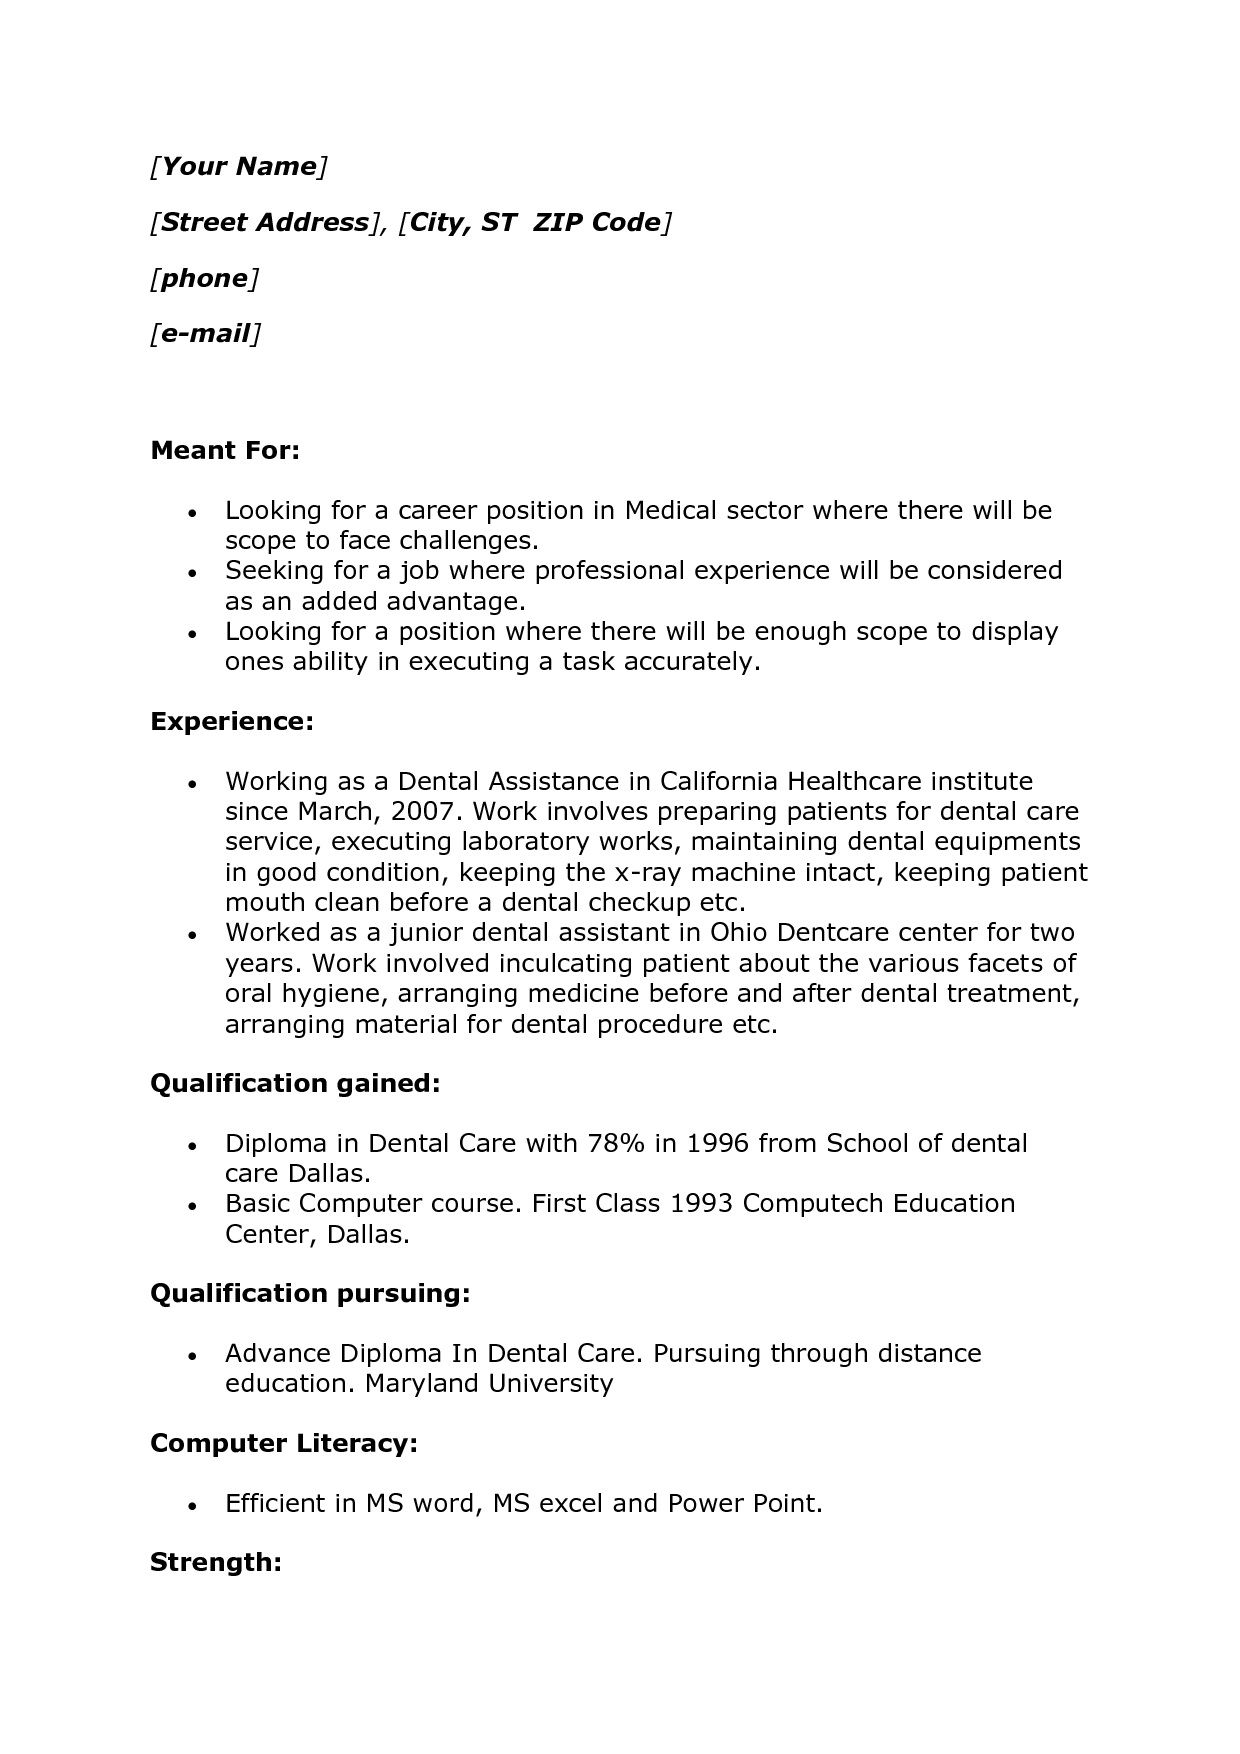 Resume Templates With No Experience Job Resume No Experience Examples #919  Httptopresume